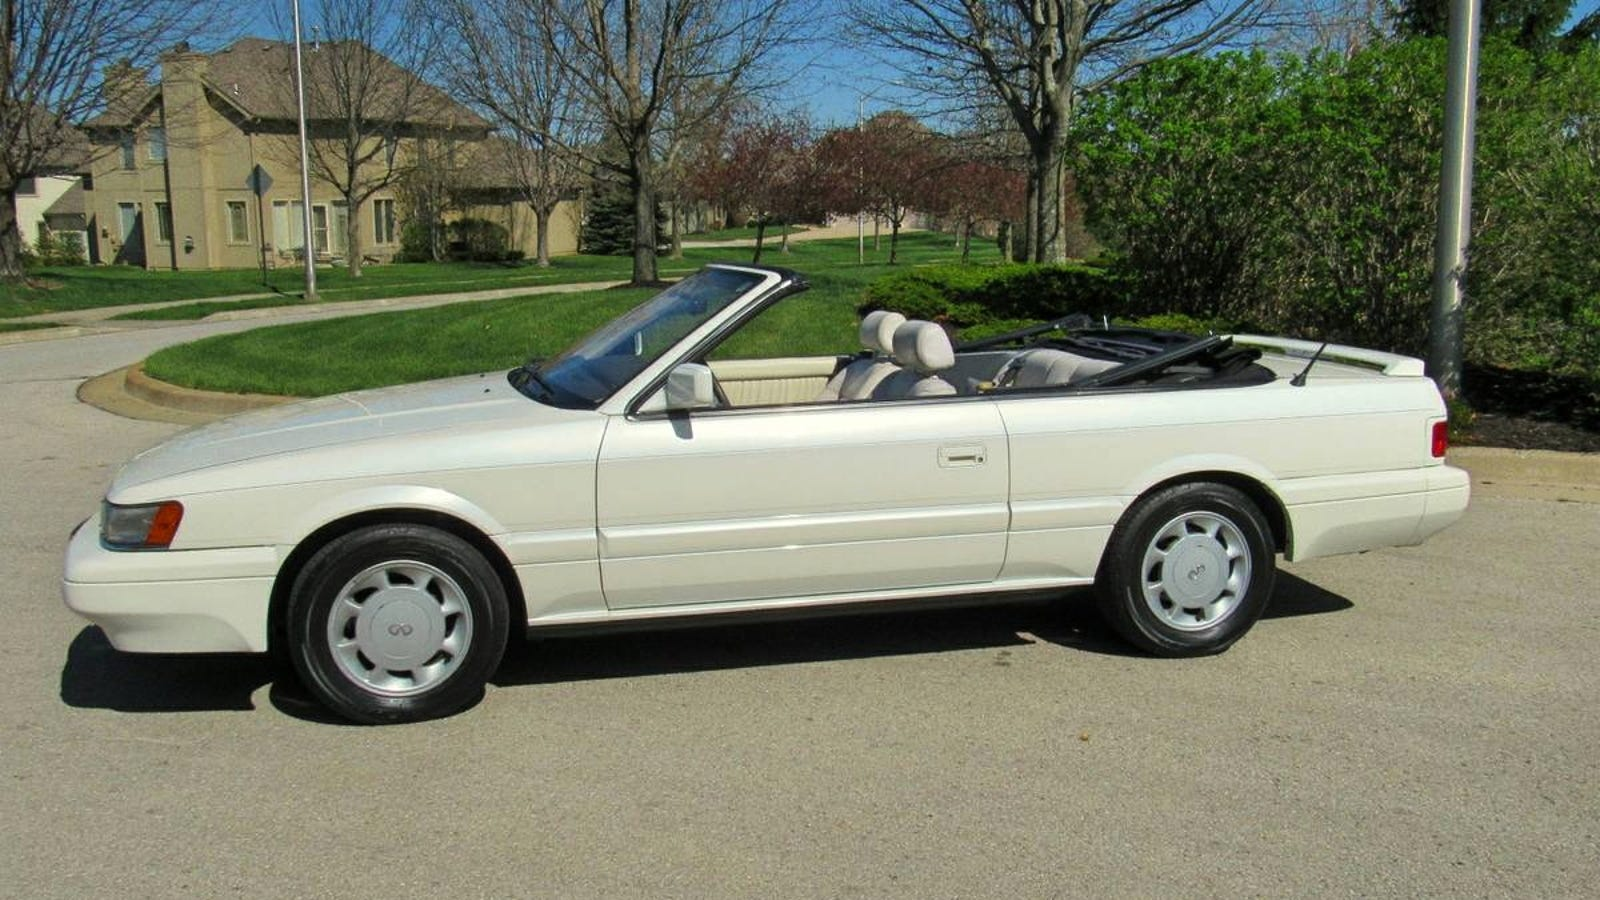 At $4,990, Could You Be Ready To Make Memories In This 1992 Infiniti M30 Convertible?